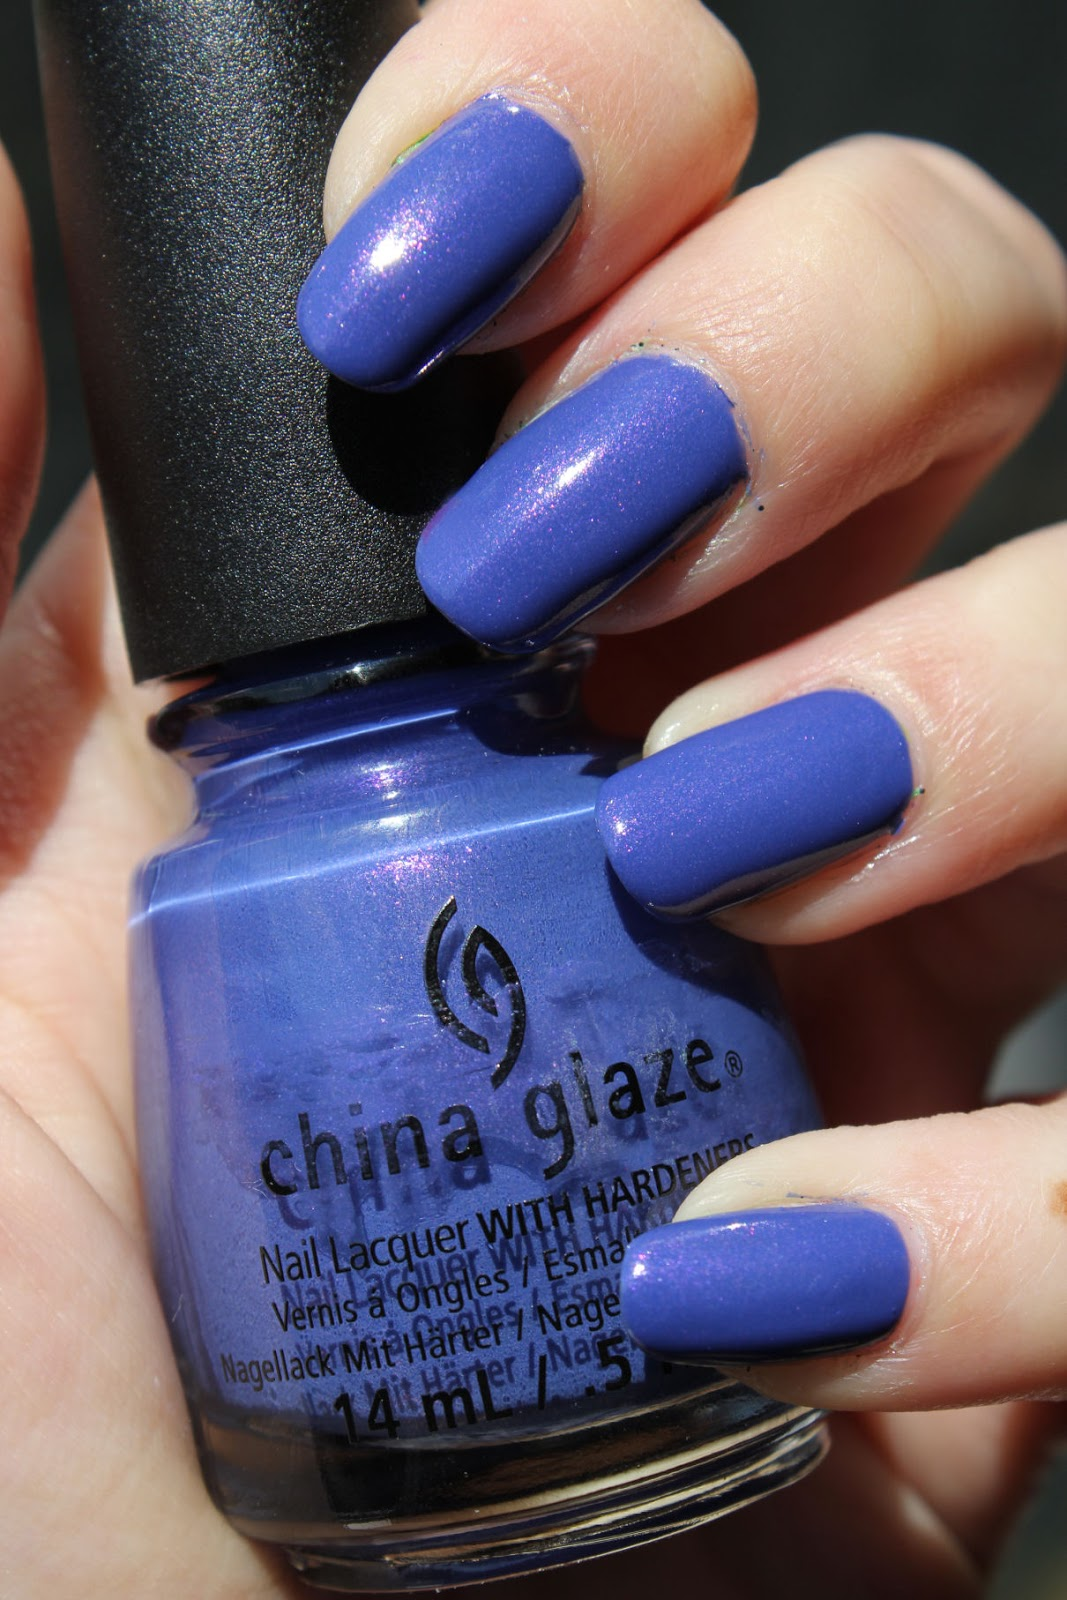 http://lacquediction.blogspot.de/2014/07/china-glaze-fancy-pants.html